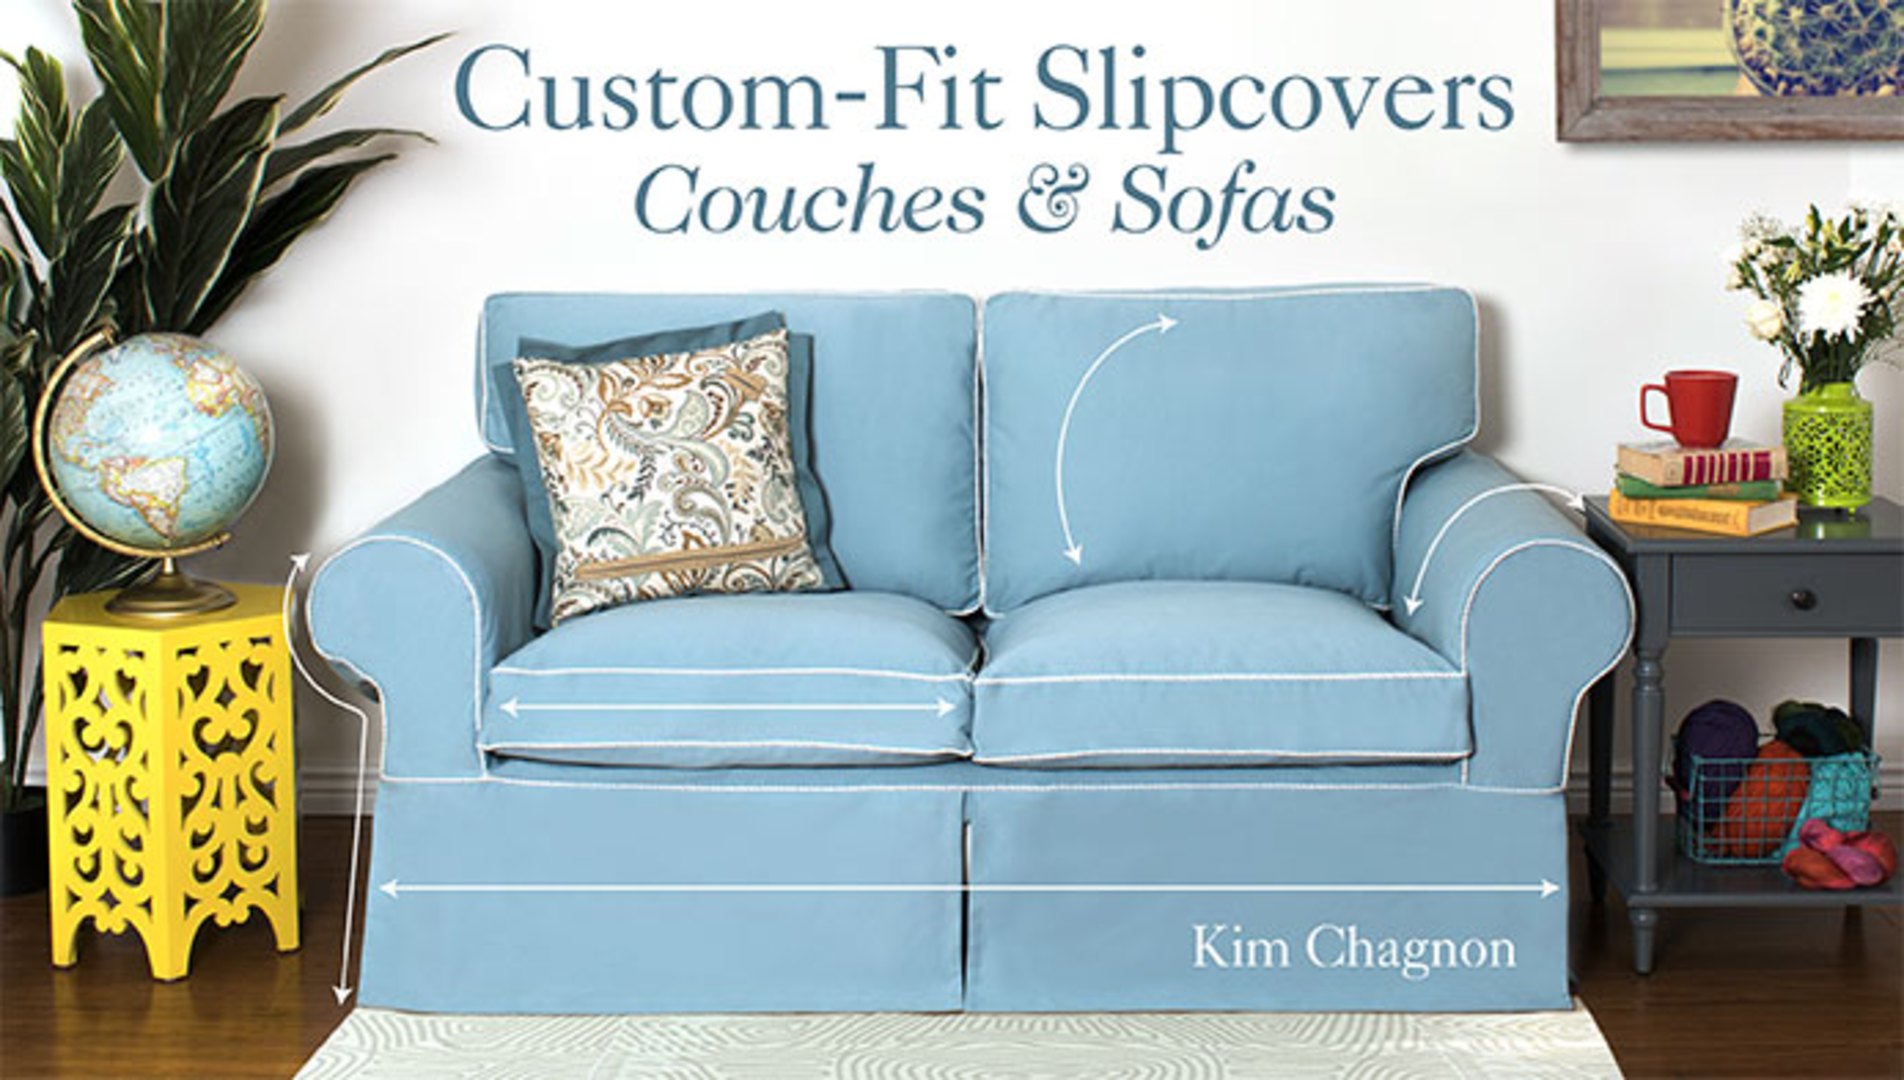 Custom Fit Slipcovers: Couches & Sofas   Craftsy Inside Customized Sofas (View 9 of 15)